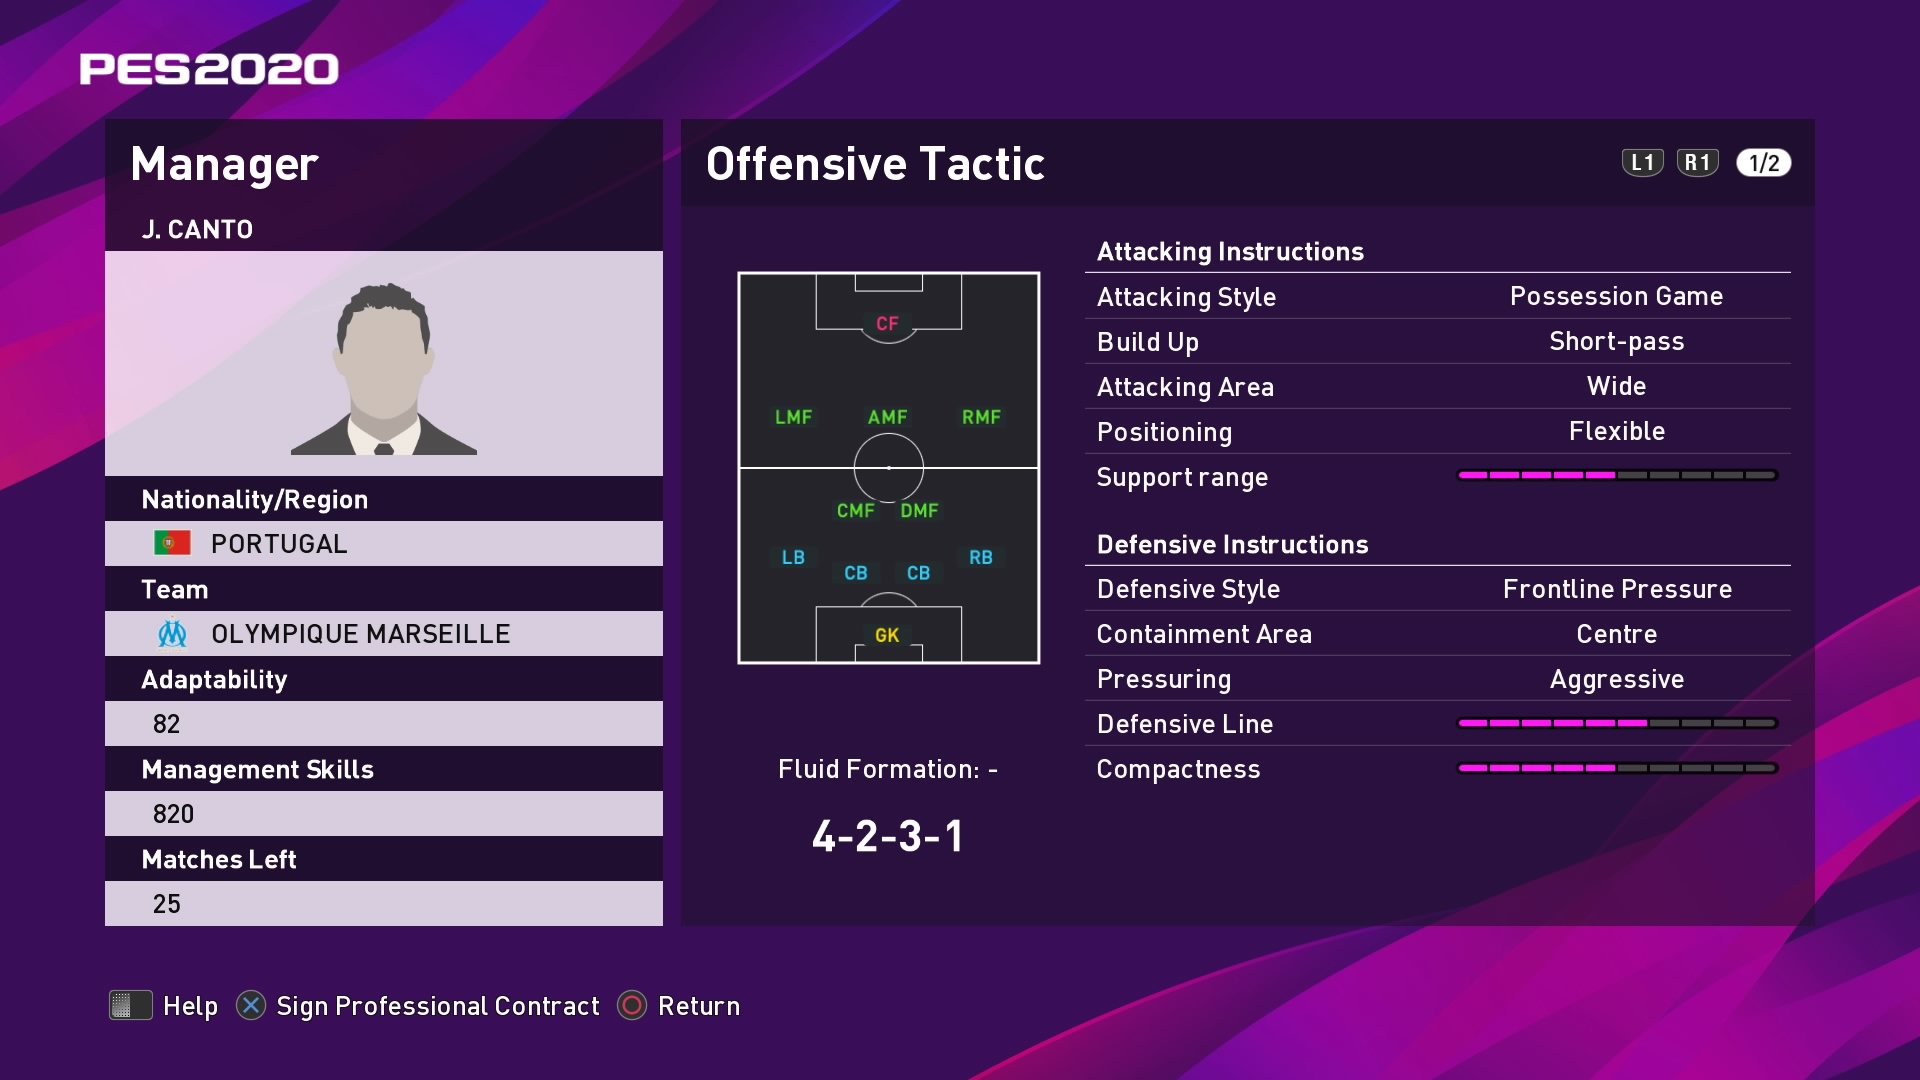 J. Canto (2) (André Villas-Boas) Offensive Tactic in PES 2020 myClub